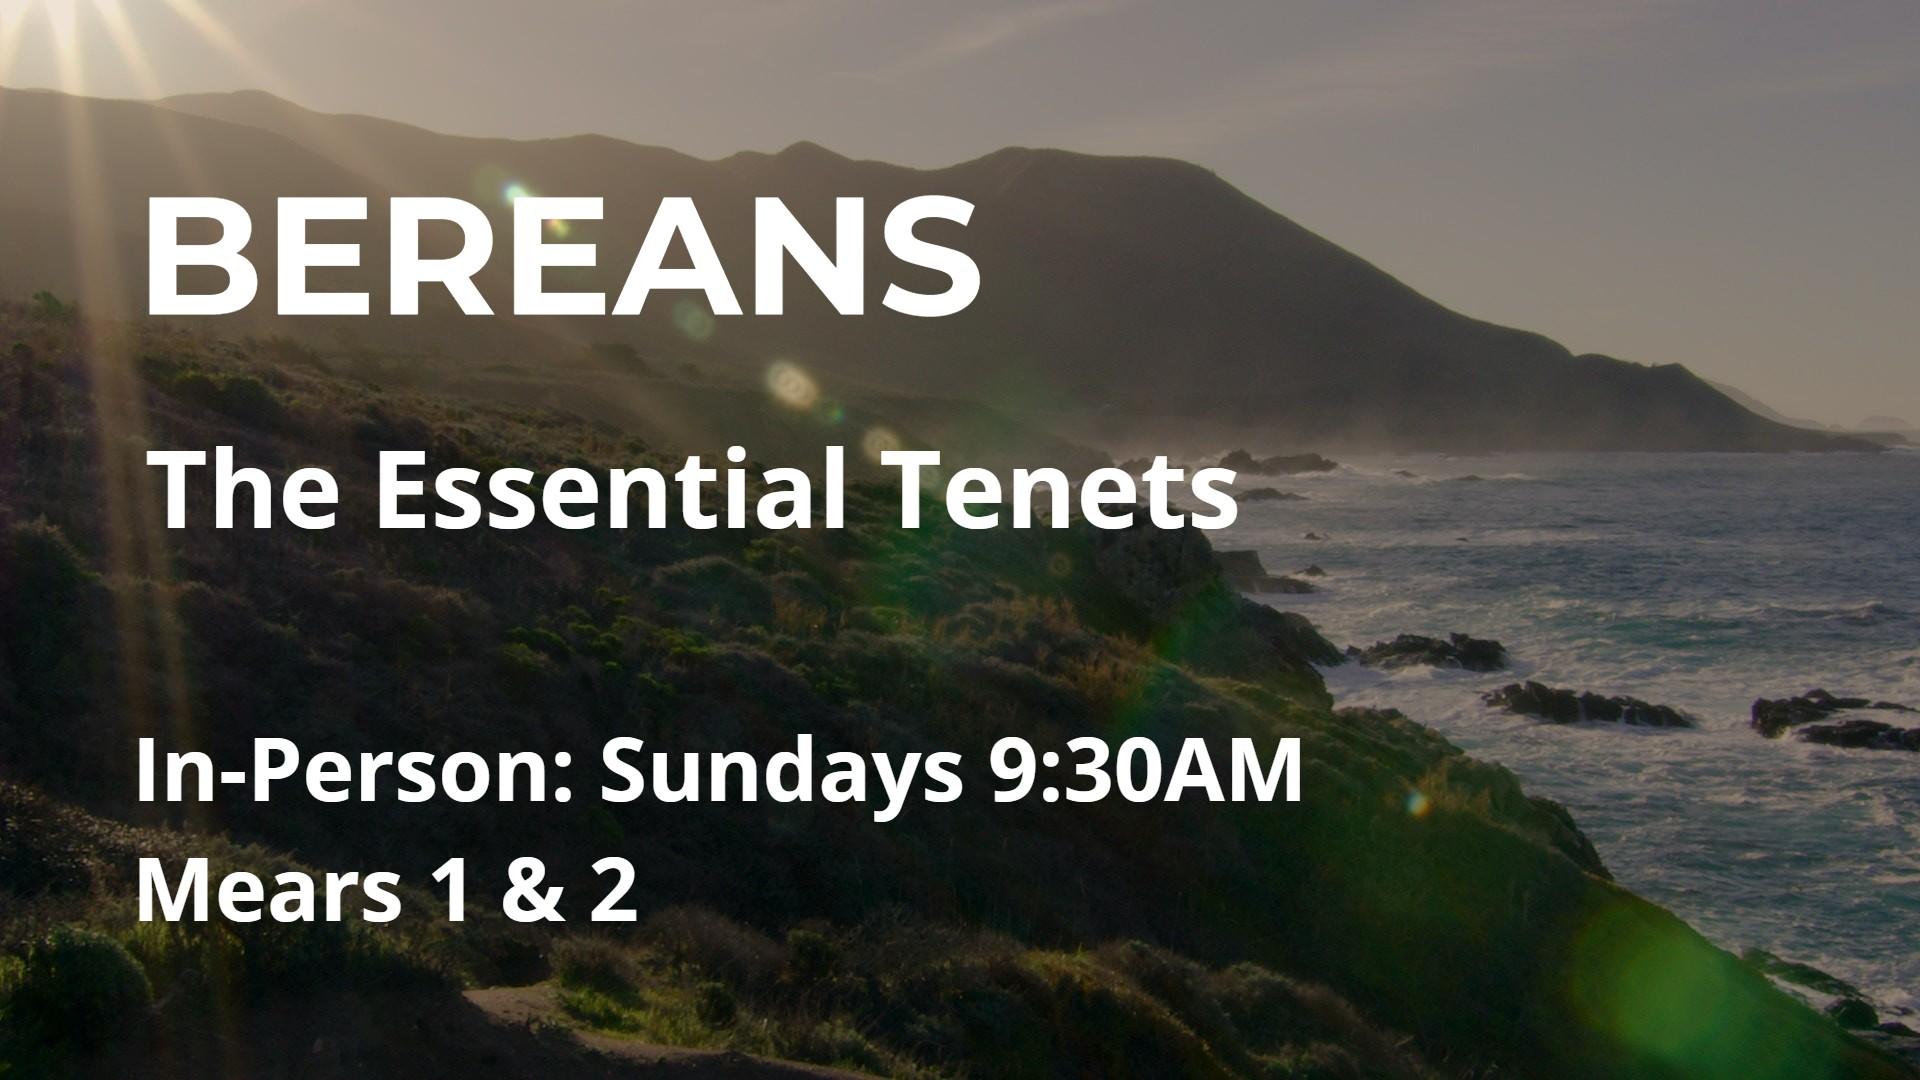 Bereans - The Essential Tenets @ Mears 1 & 2, FPCH | Los Angeles | California | United States